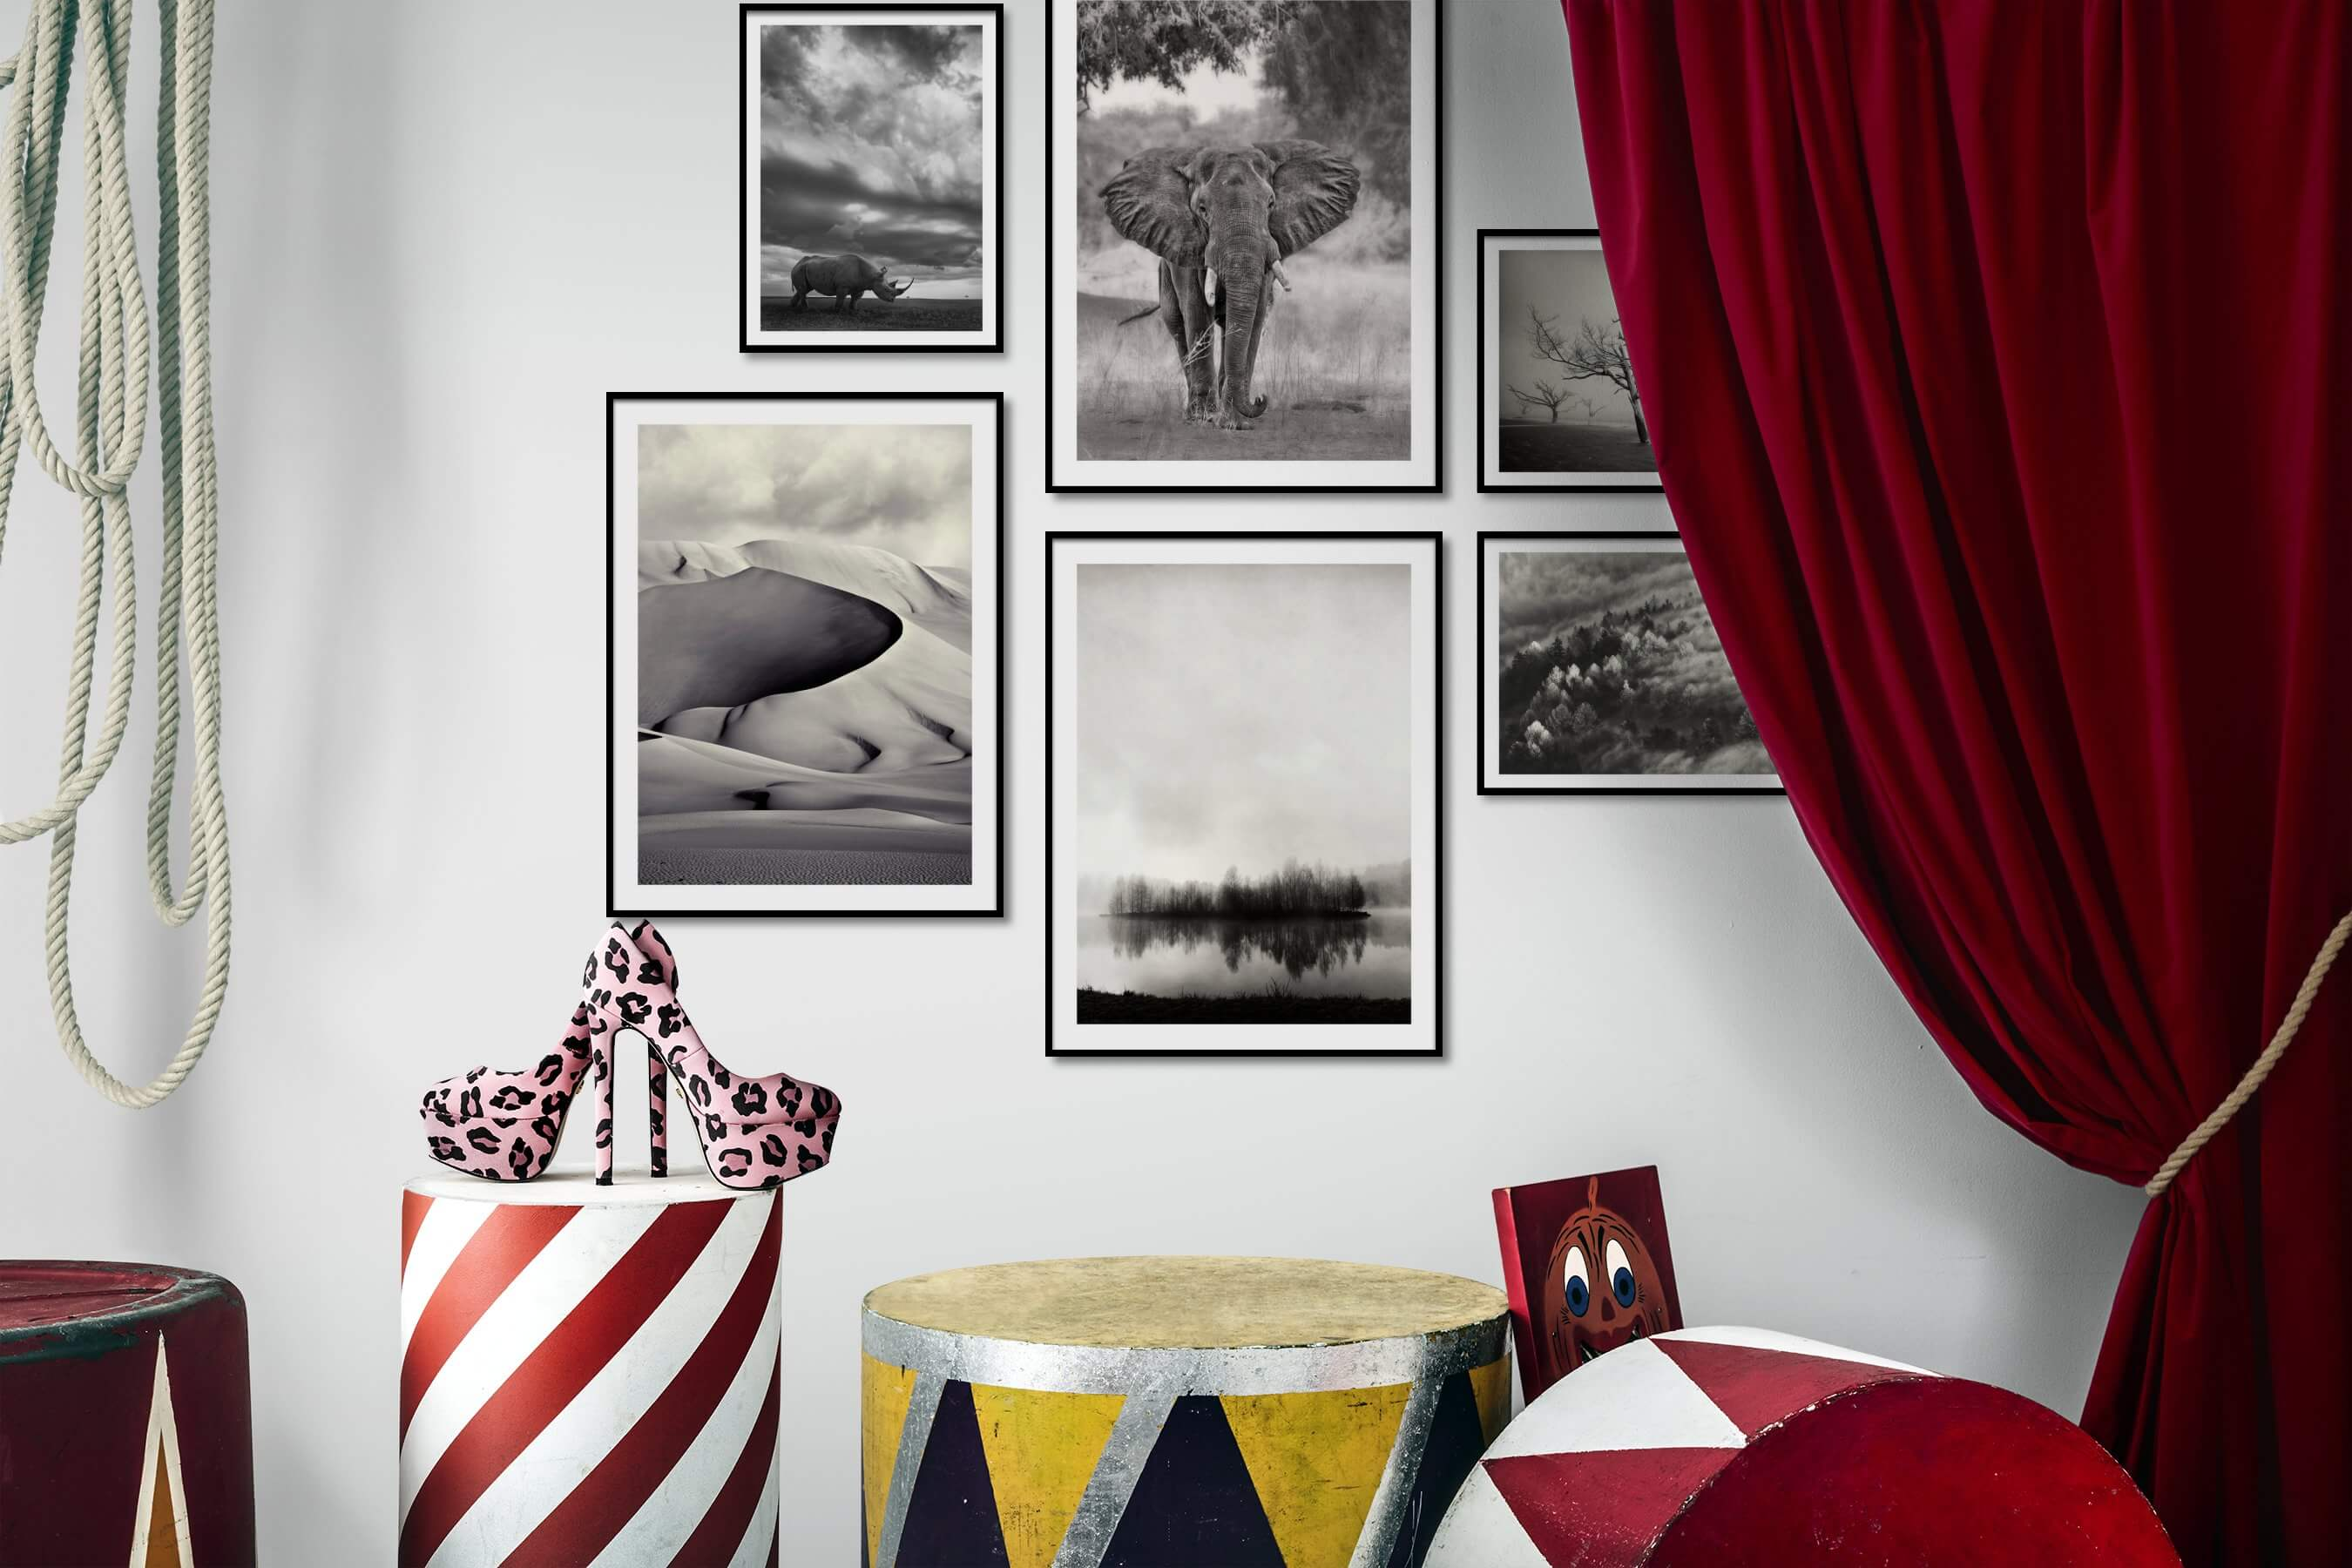 Gallery wall idea with six framed pictures arranged on a wall depicting Black & White, Animals, For the Moderate, Nature, For the Minimalist, and Mindfulness